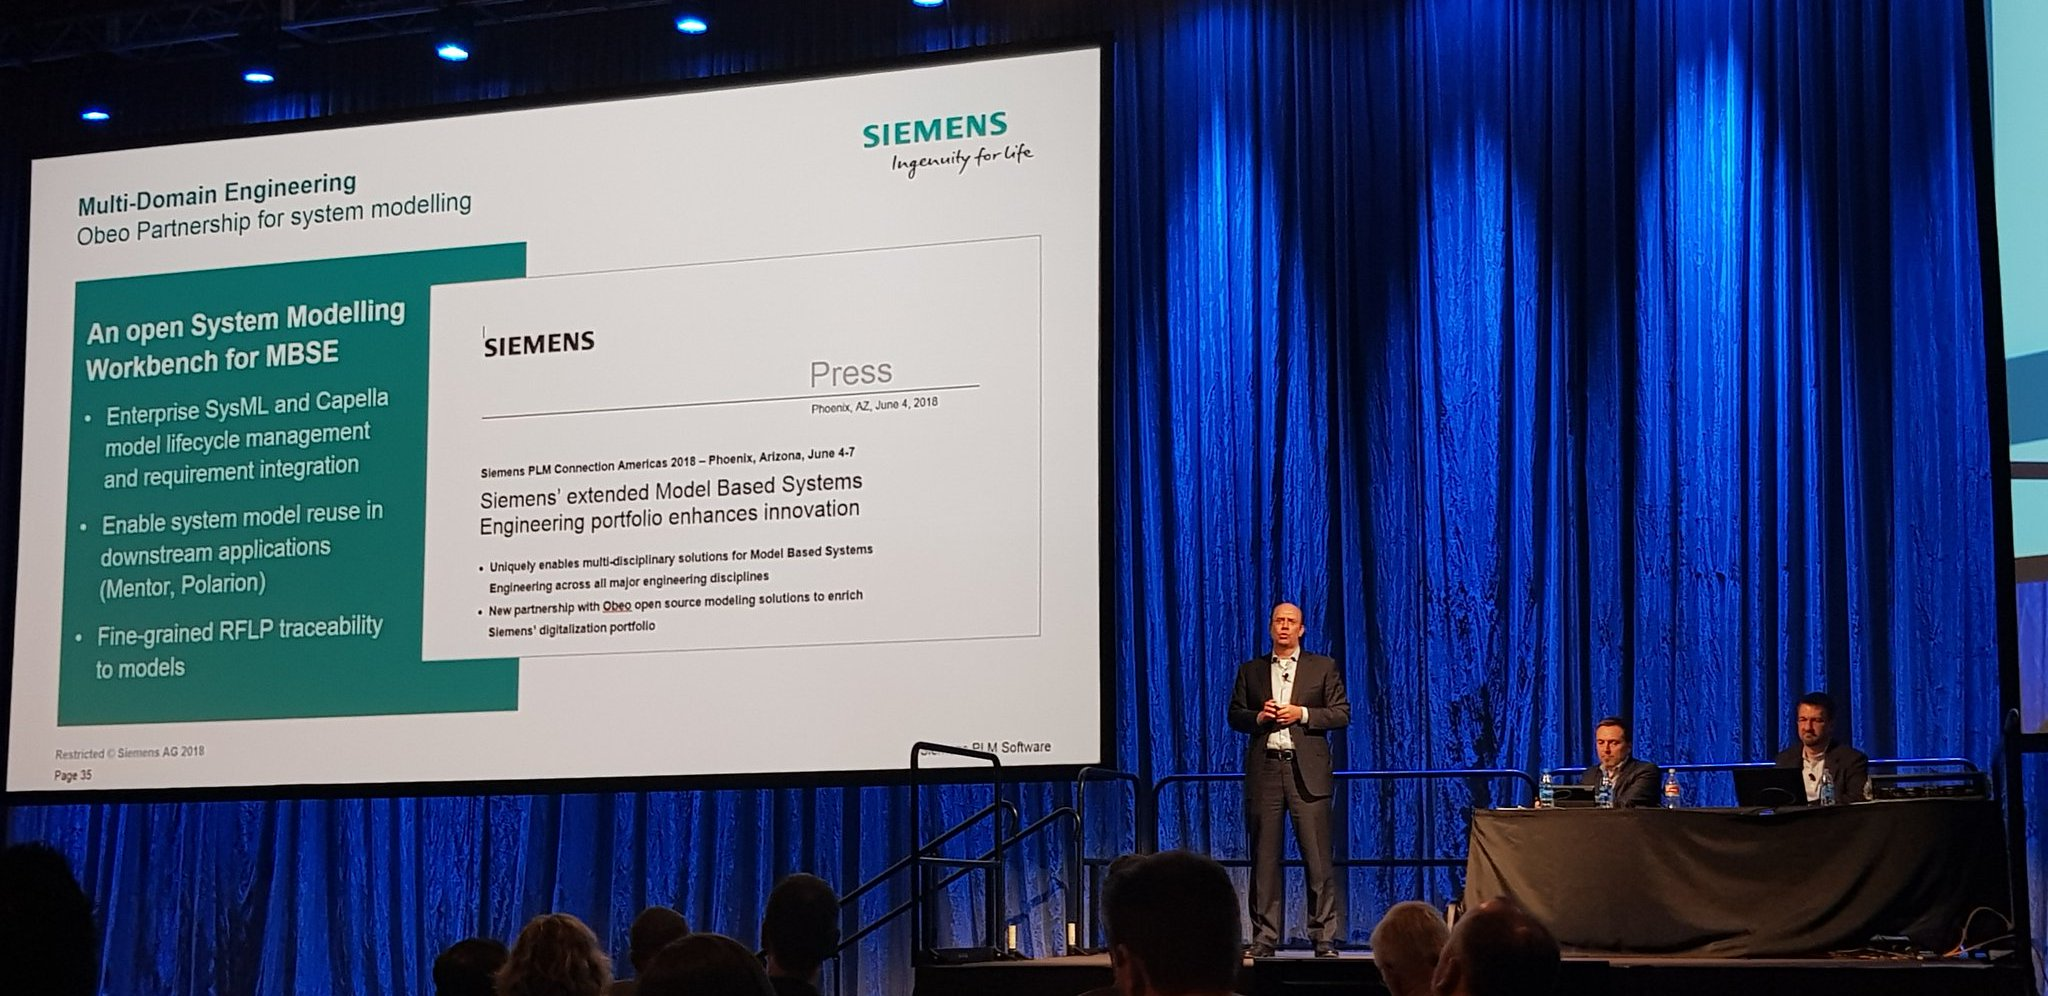 Siemens partnering with Obeo on Model Based Systems